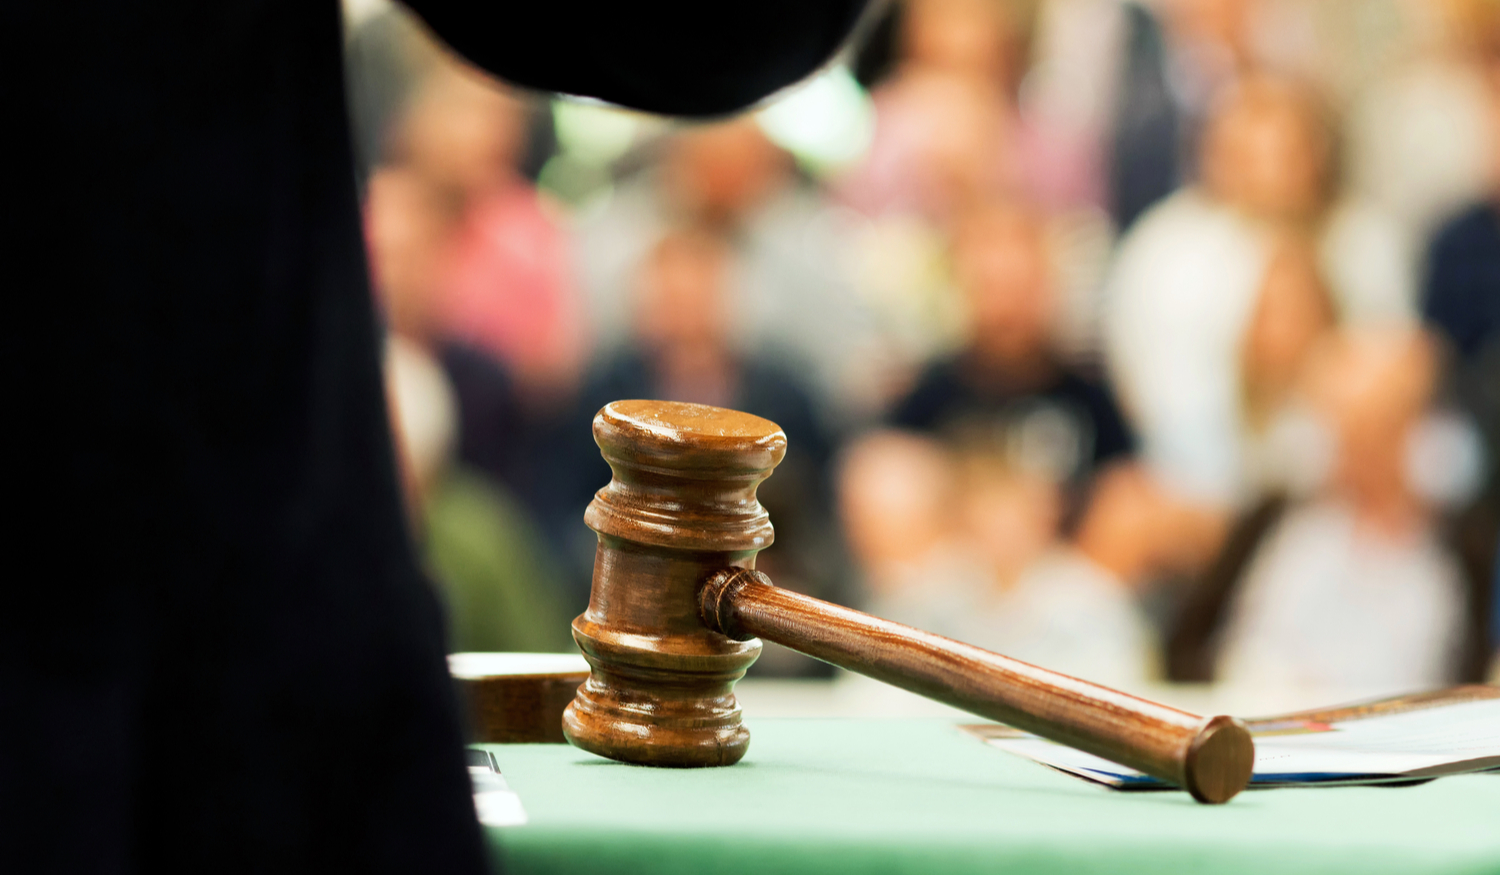 Image of an auction gavel